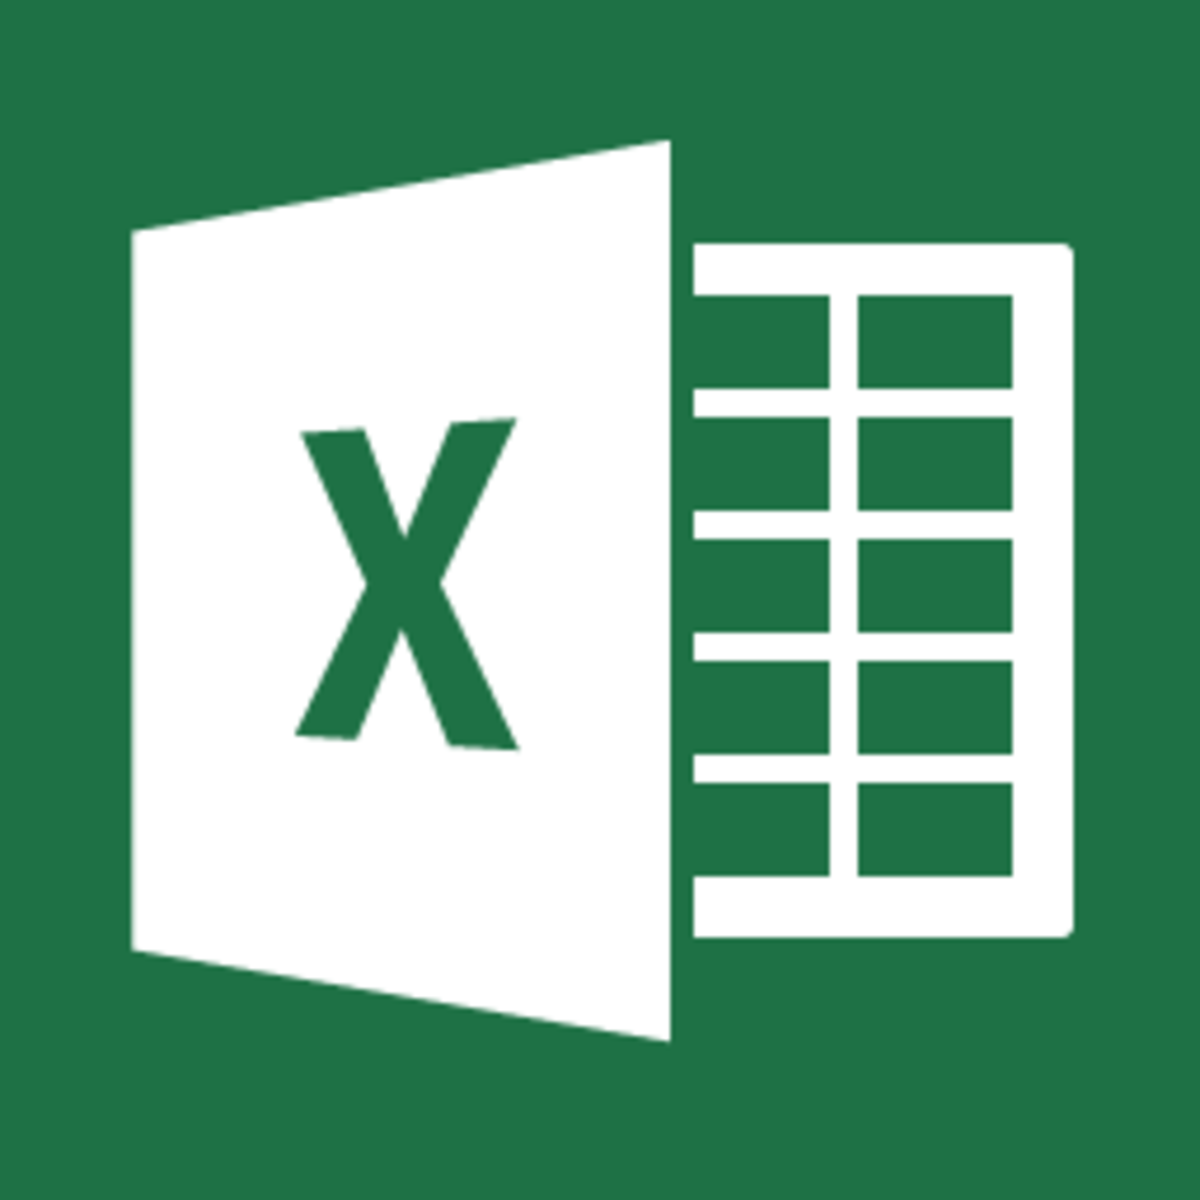 Cross-Tabulating Variables: How to Create a Contingency Table in Microsoft Excel